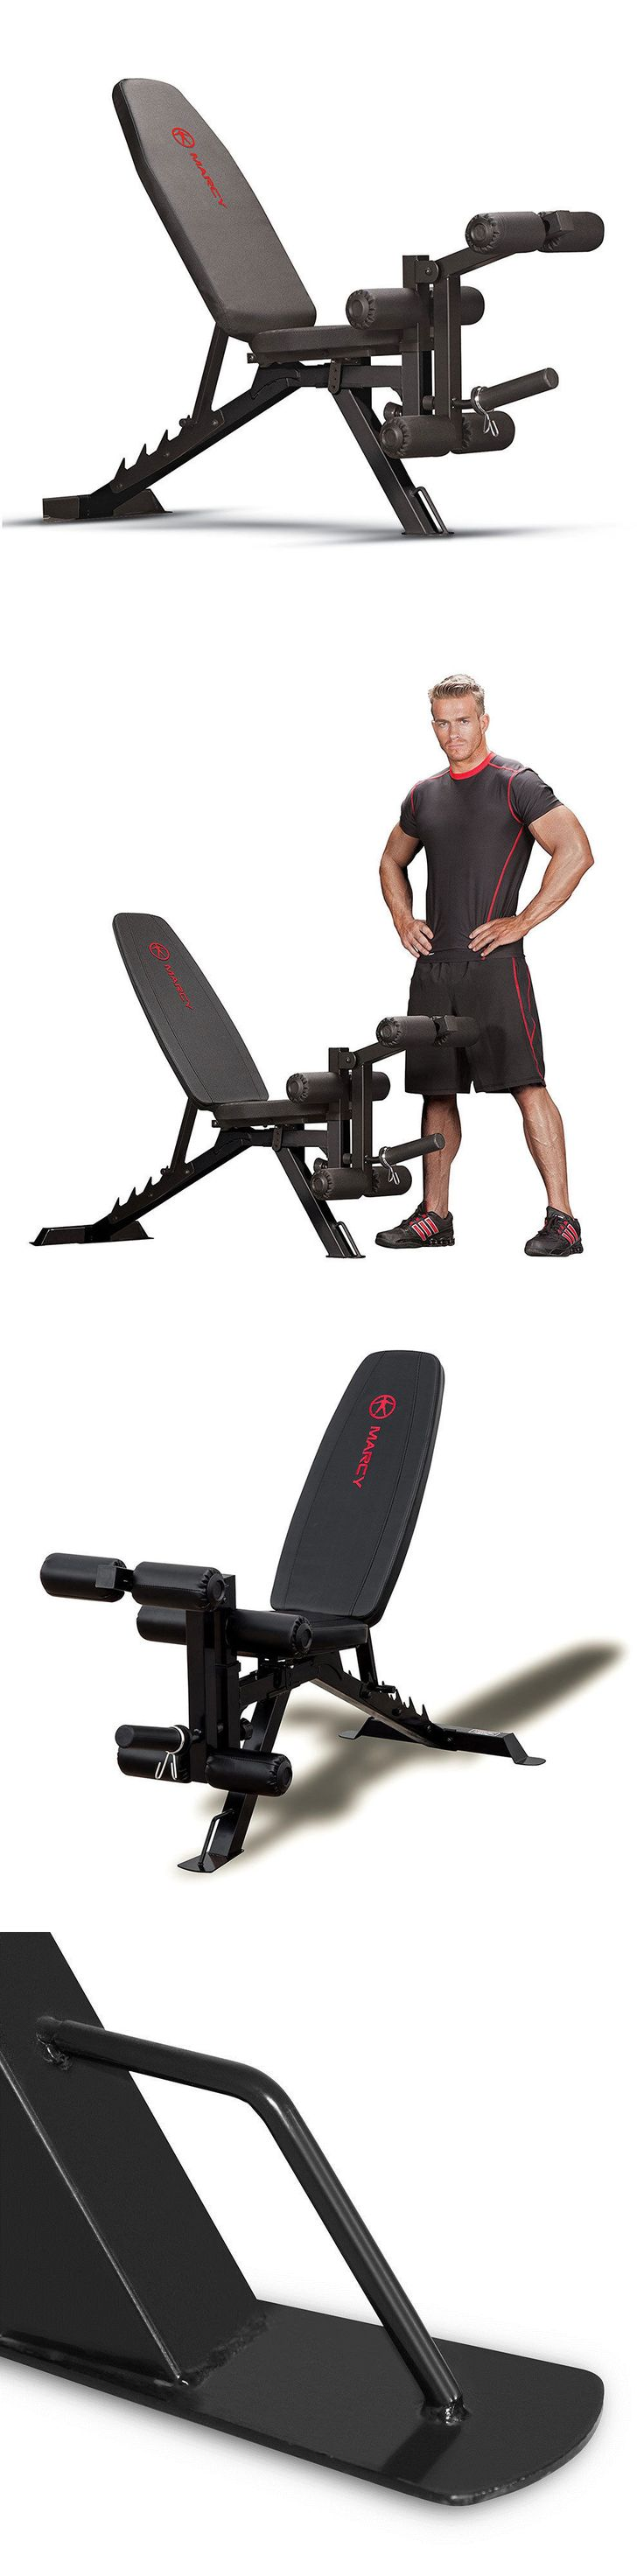 Benches 15281: Marcy Deluxe Utility Weight Bench Sb-350 Flat Incline Decline Adjustable Folds -> BUY IT NOW ONLY: $118.99 on eBay!